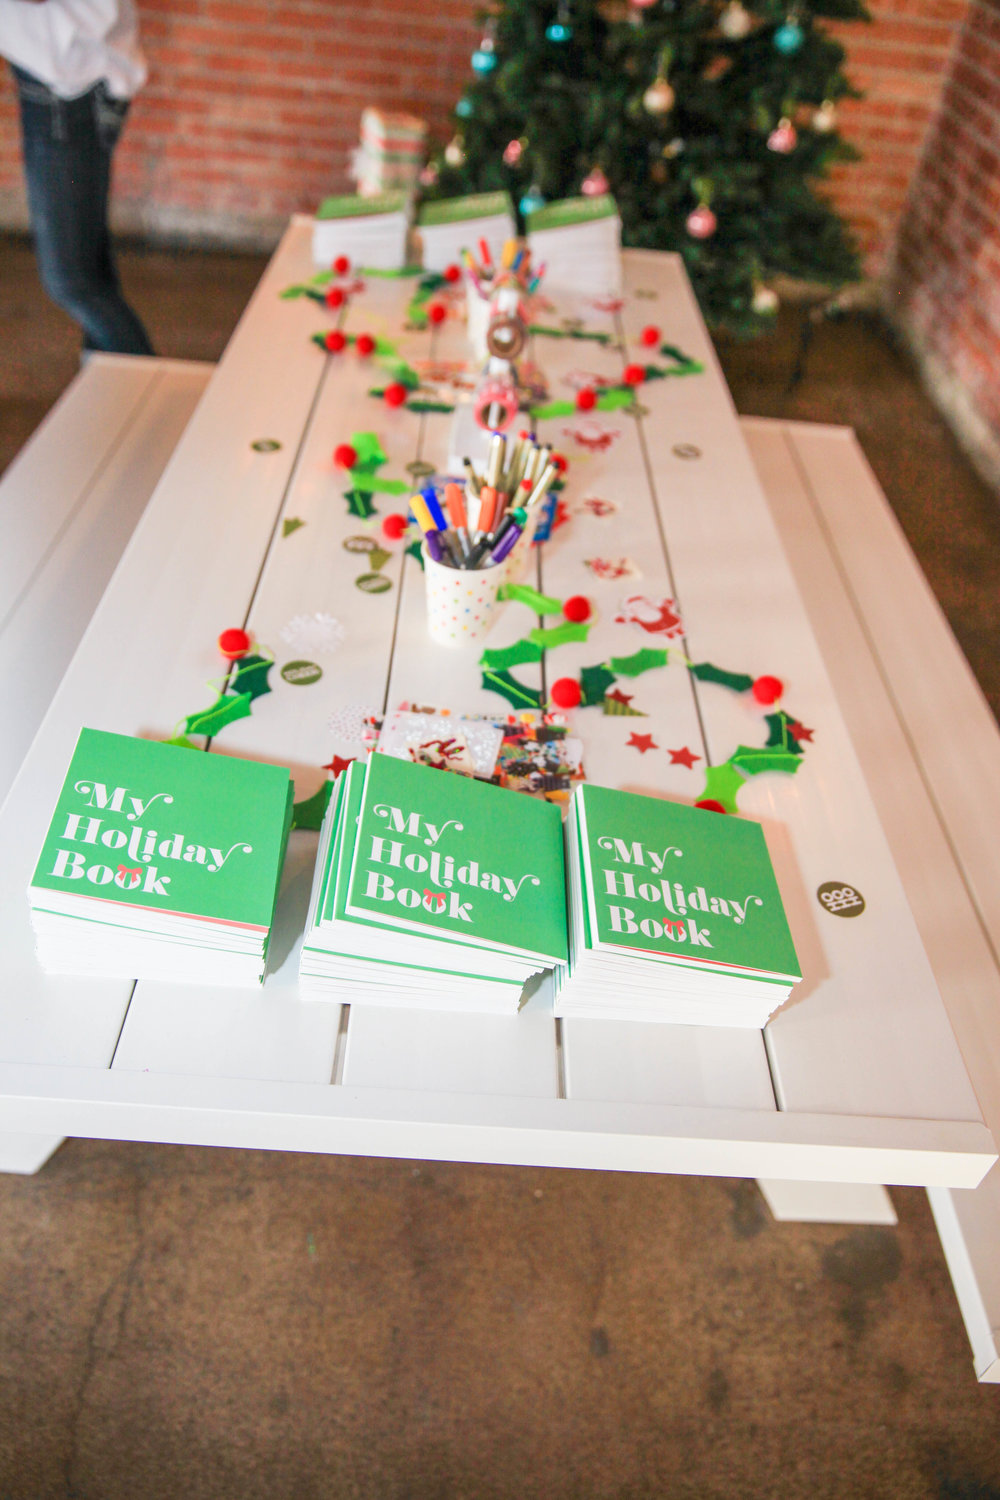 Holiday Book Picnic Table.jpg